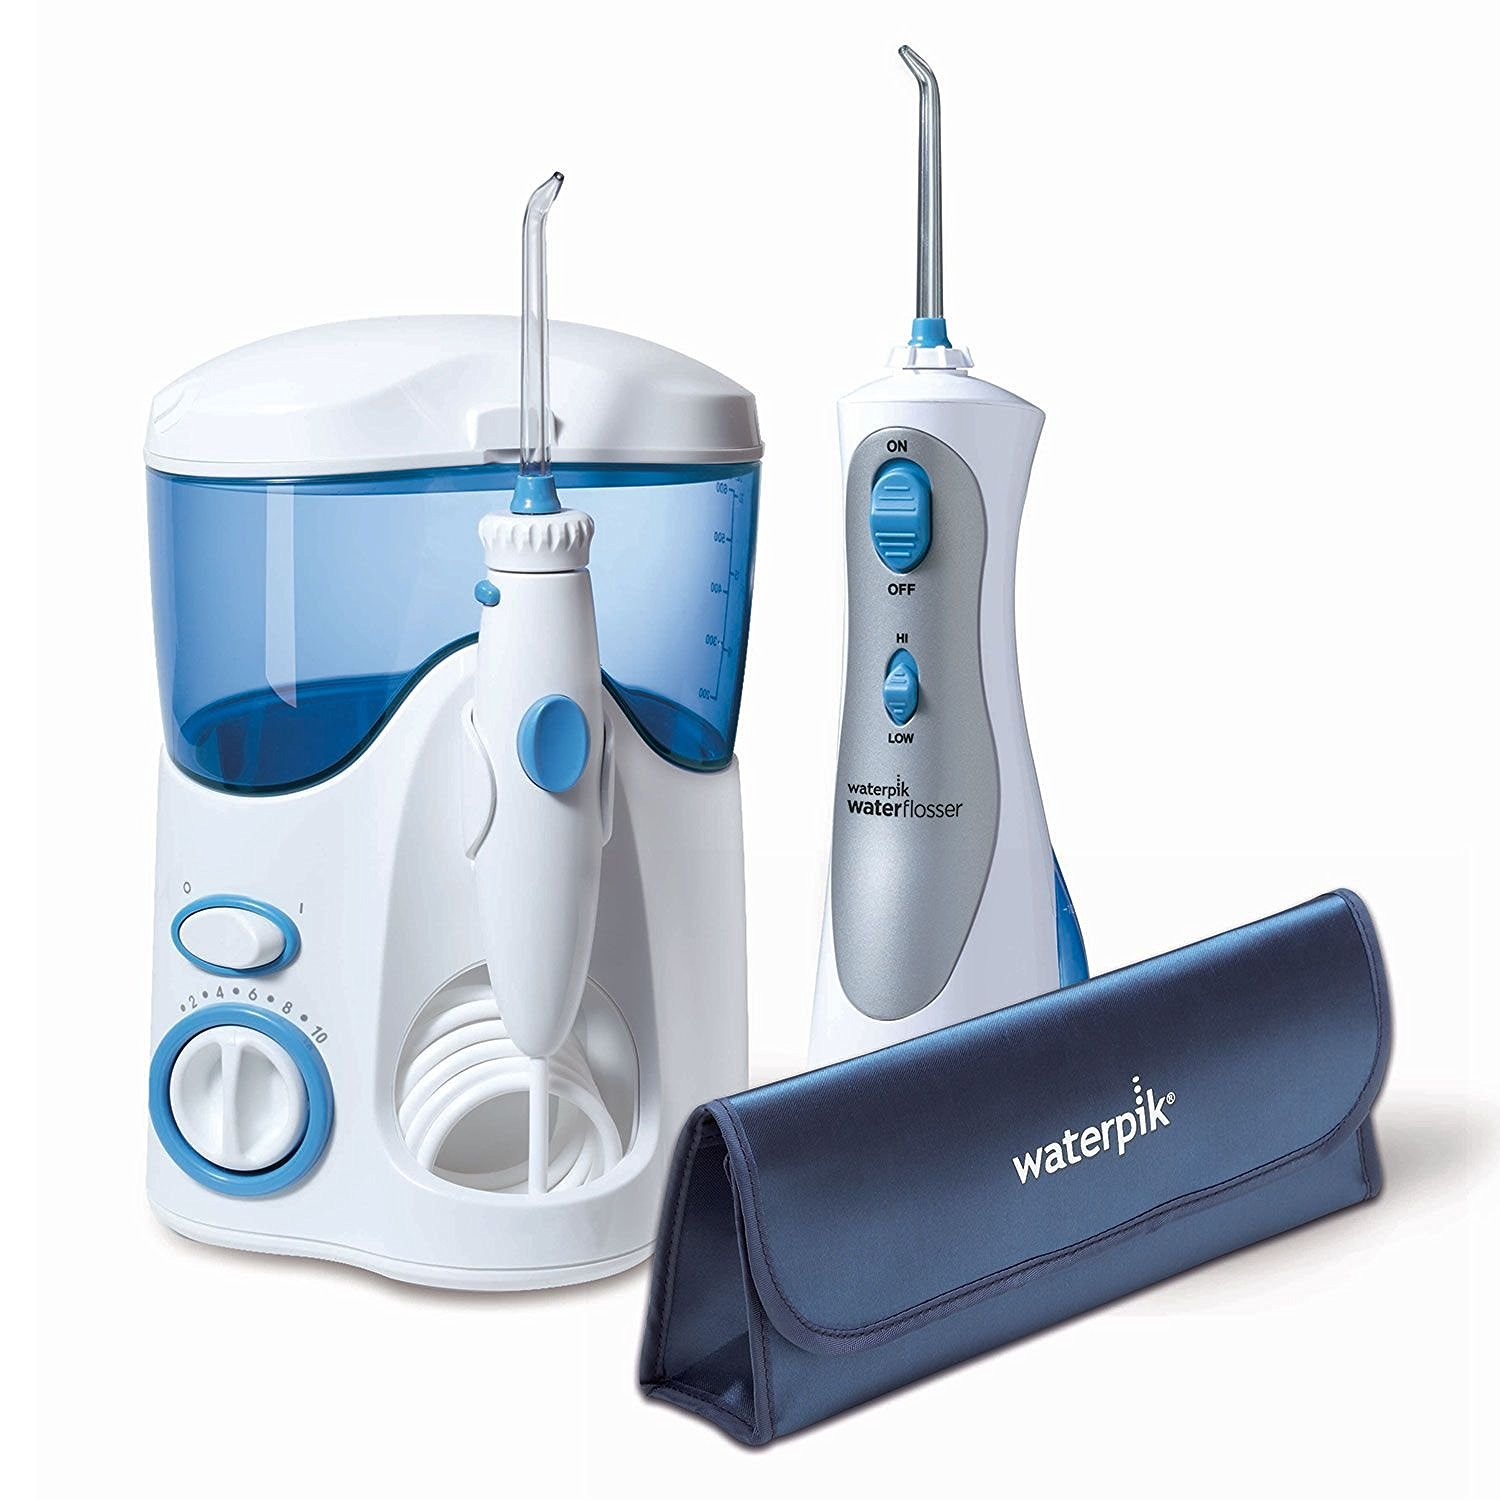 Waterpik Ultra Water Flosser Combo, Model WP-100 And WP-450